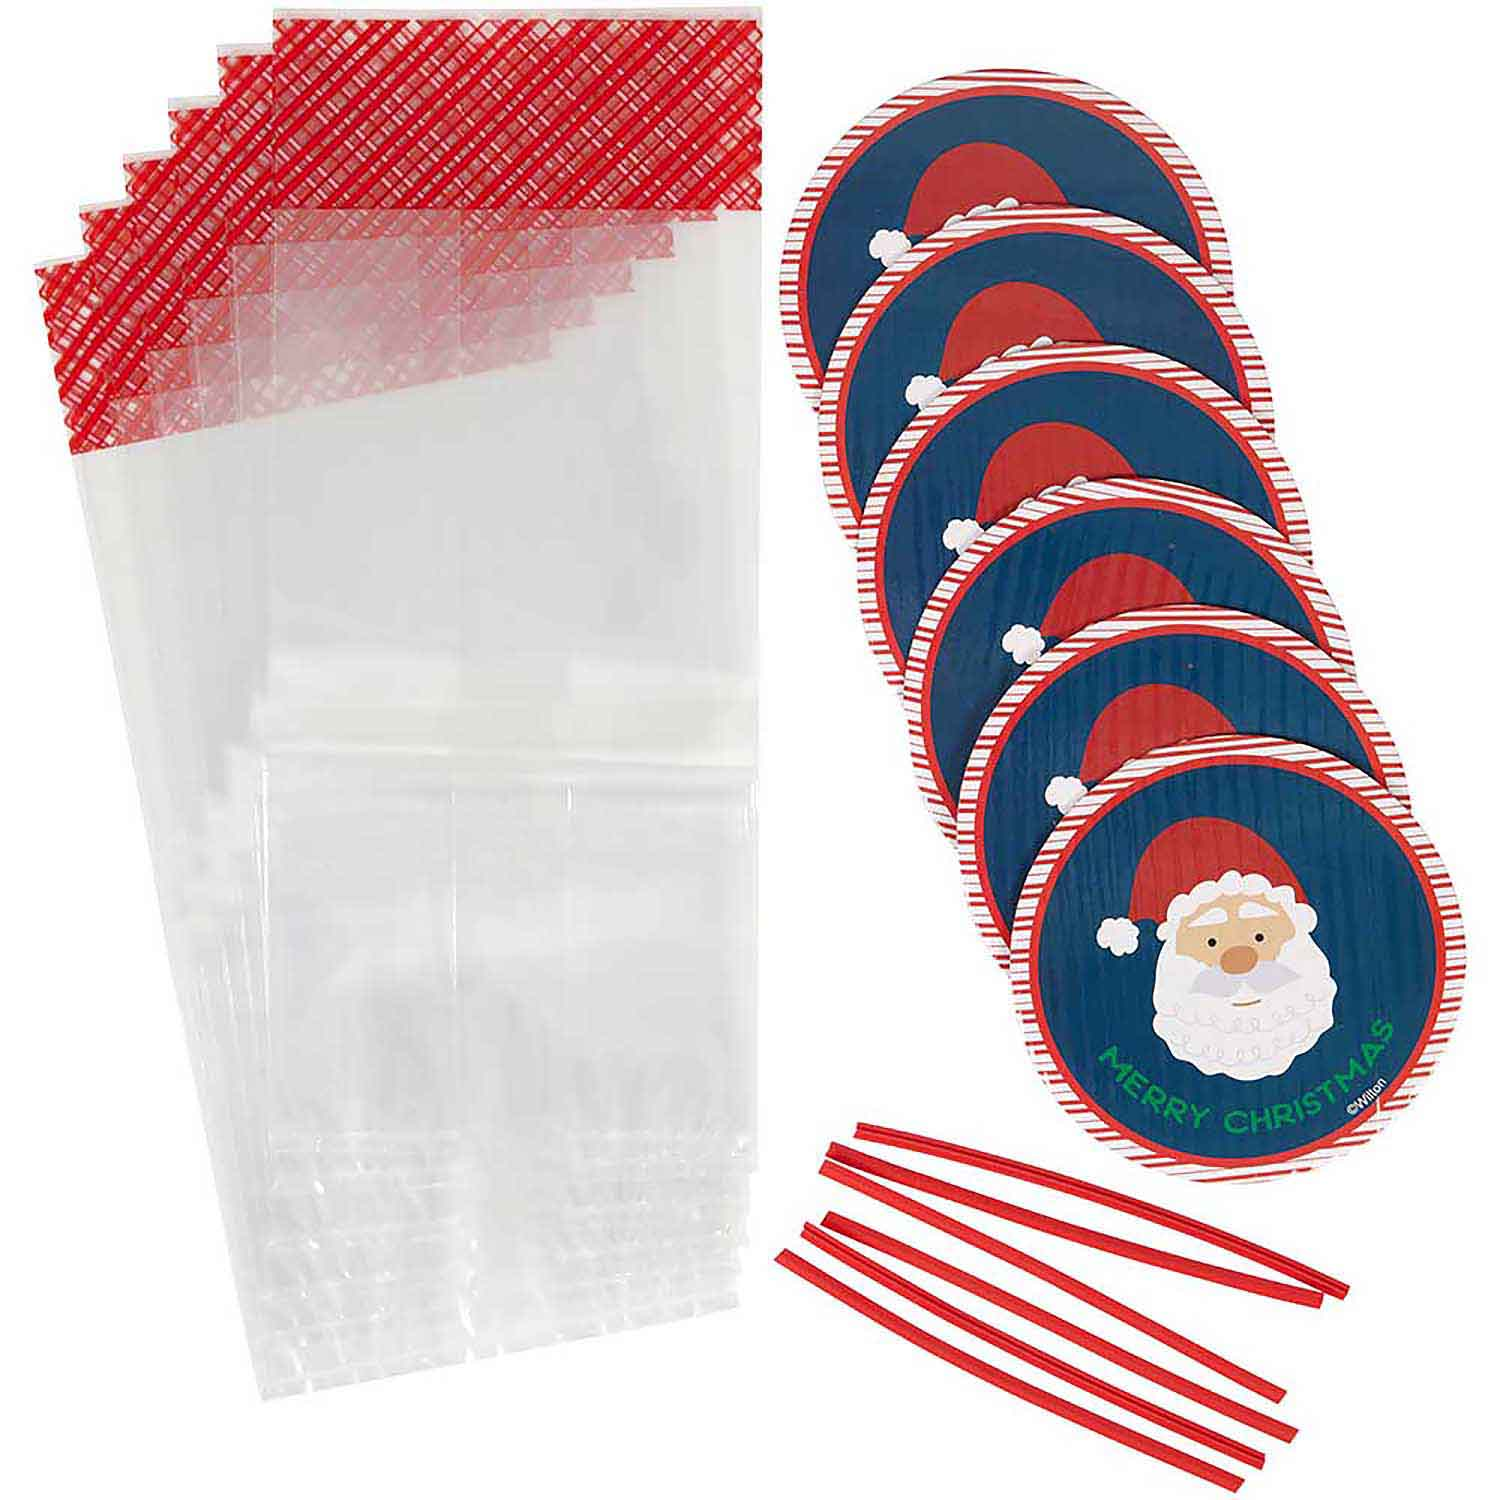 Santa Claus Mini Plate Kit